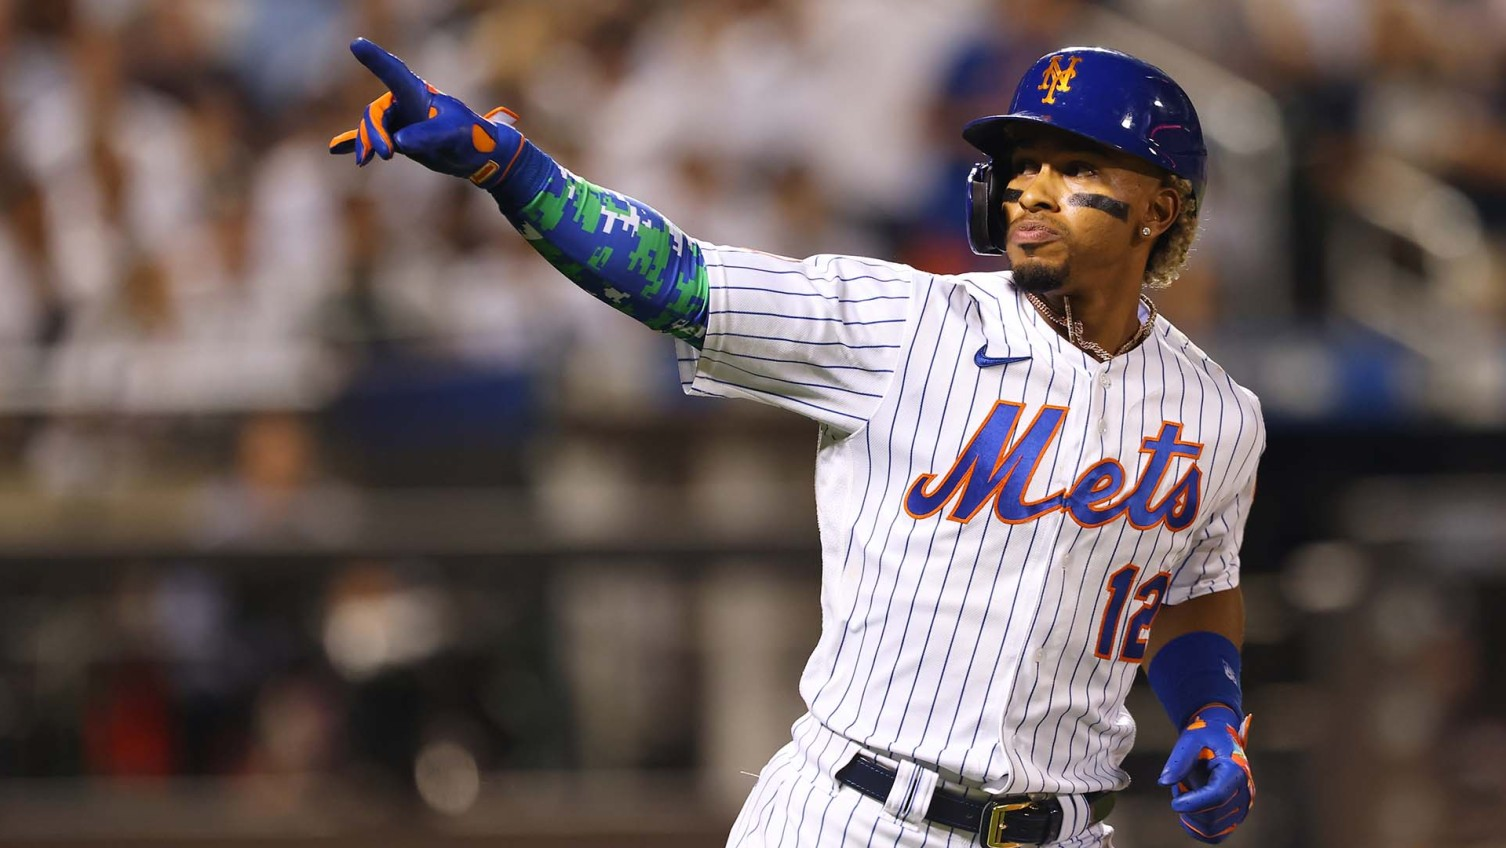 Lindor's 3rd homer lifts Mets whistling past Yanks 8-7